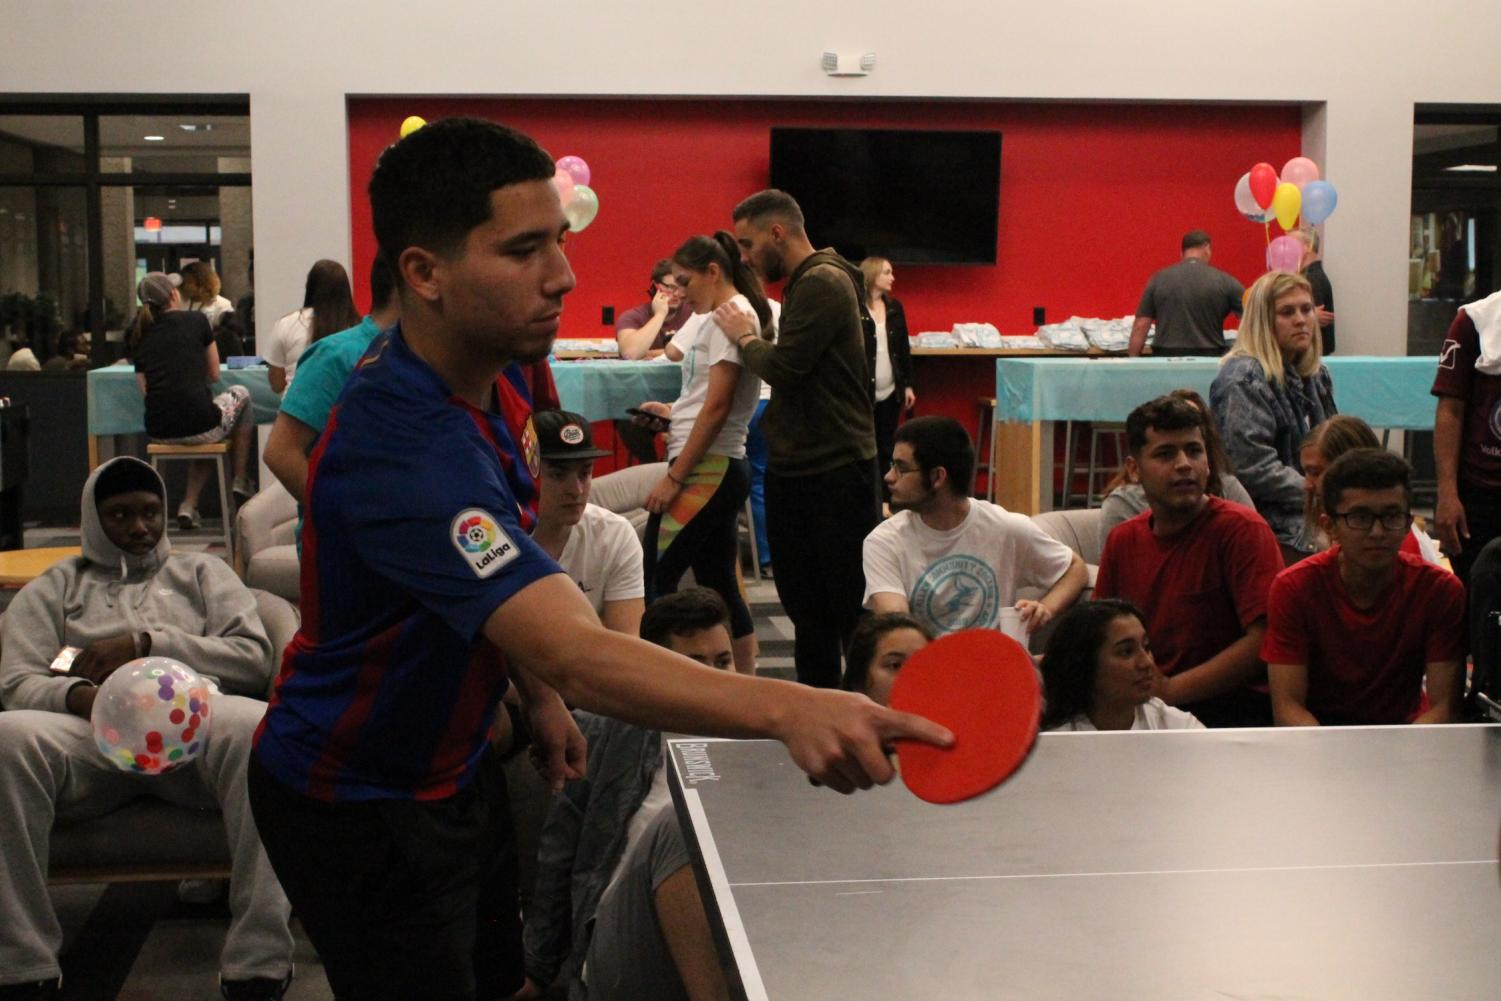 Austin+Cuevas+competed+in+the+ping+pong+tournament+at+Sophomore+Send-Off.